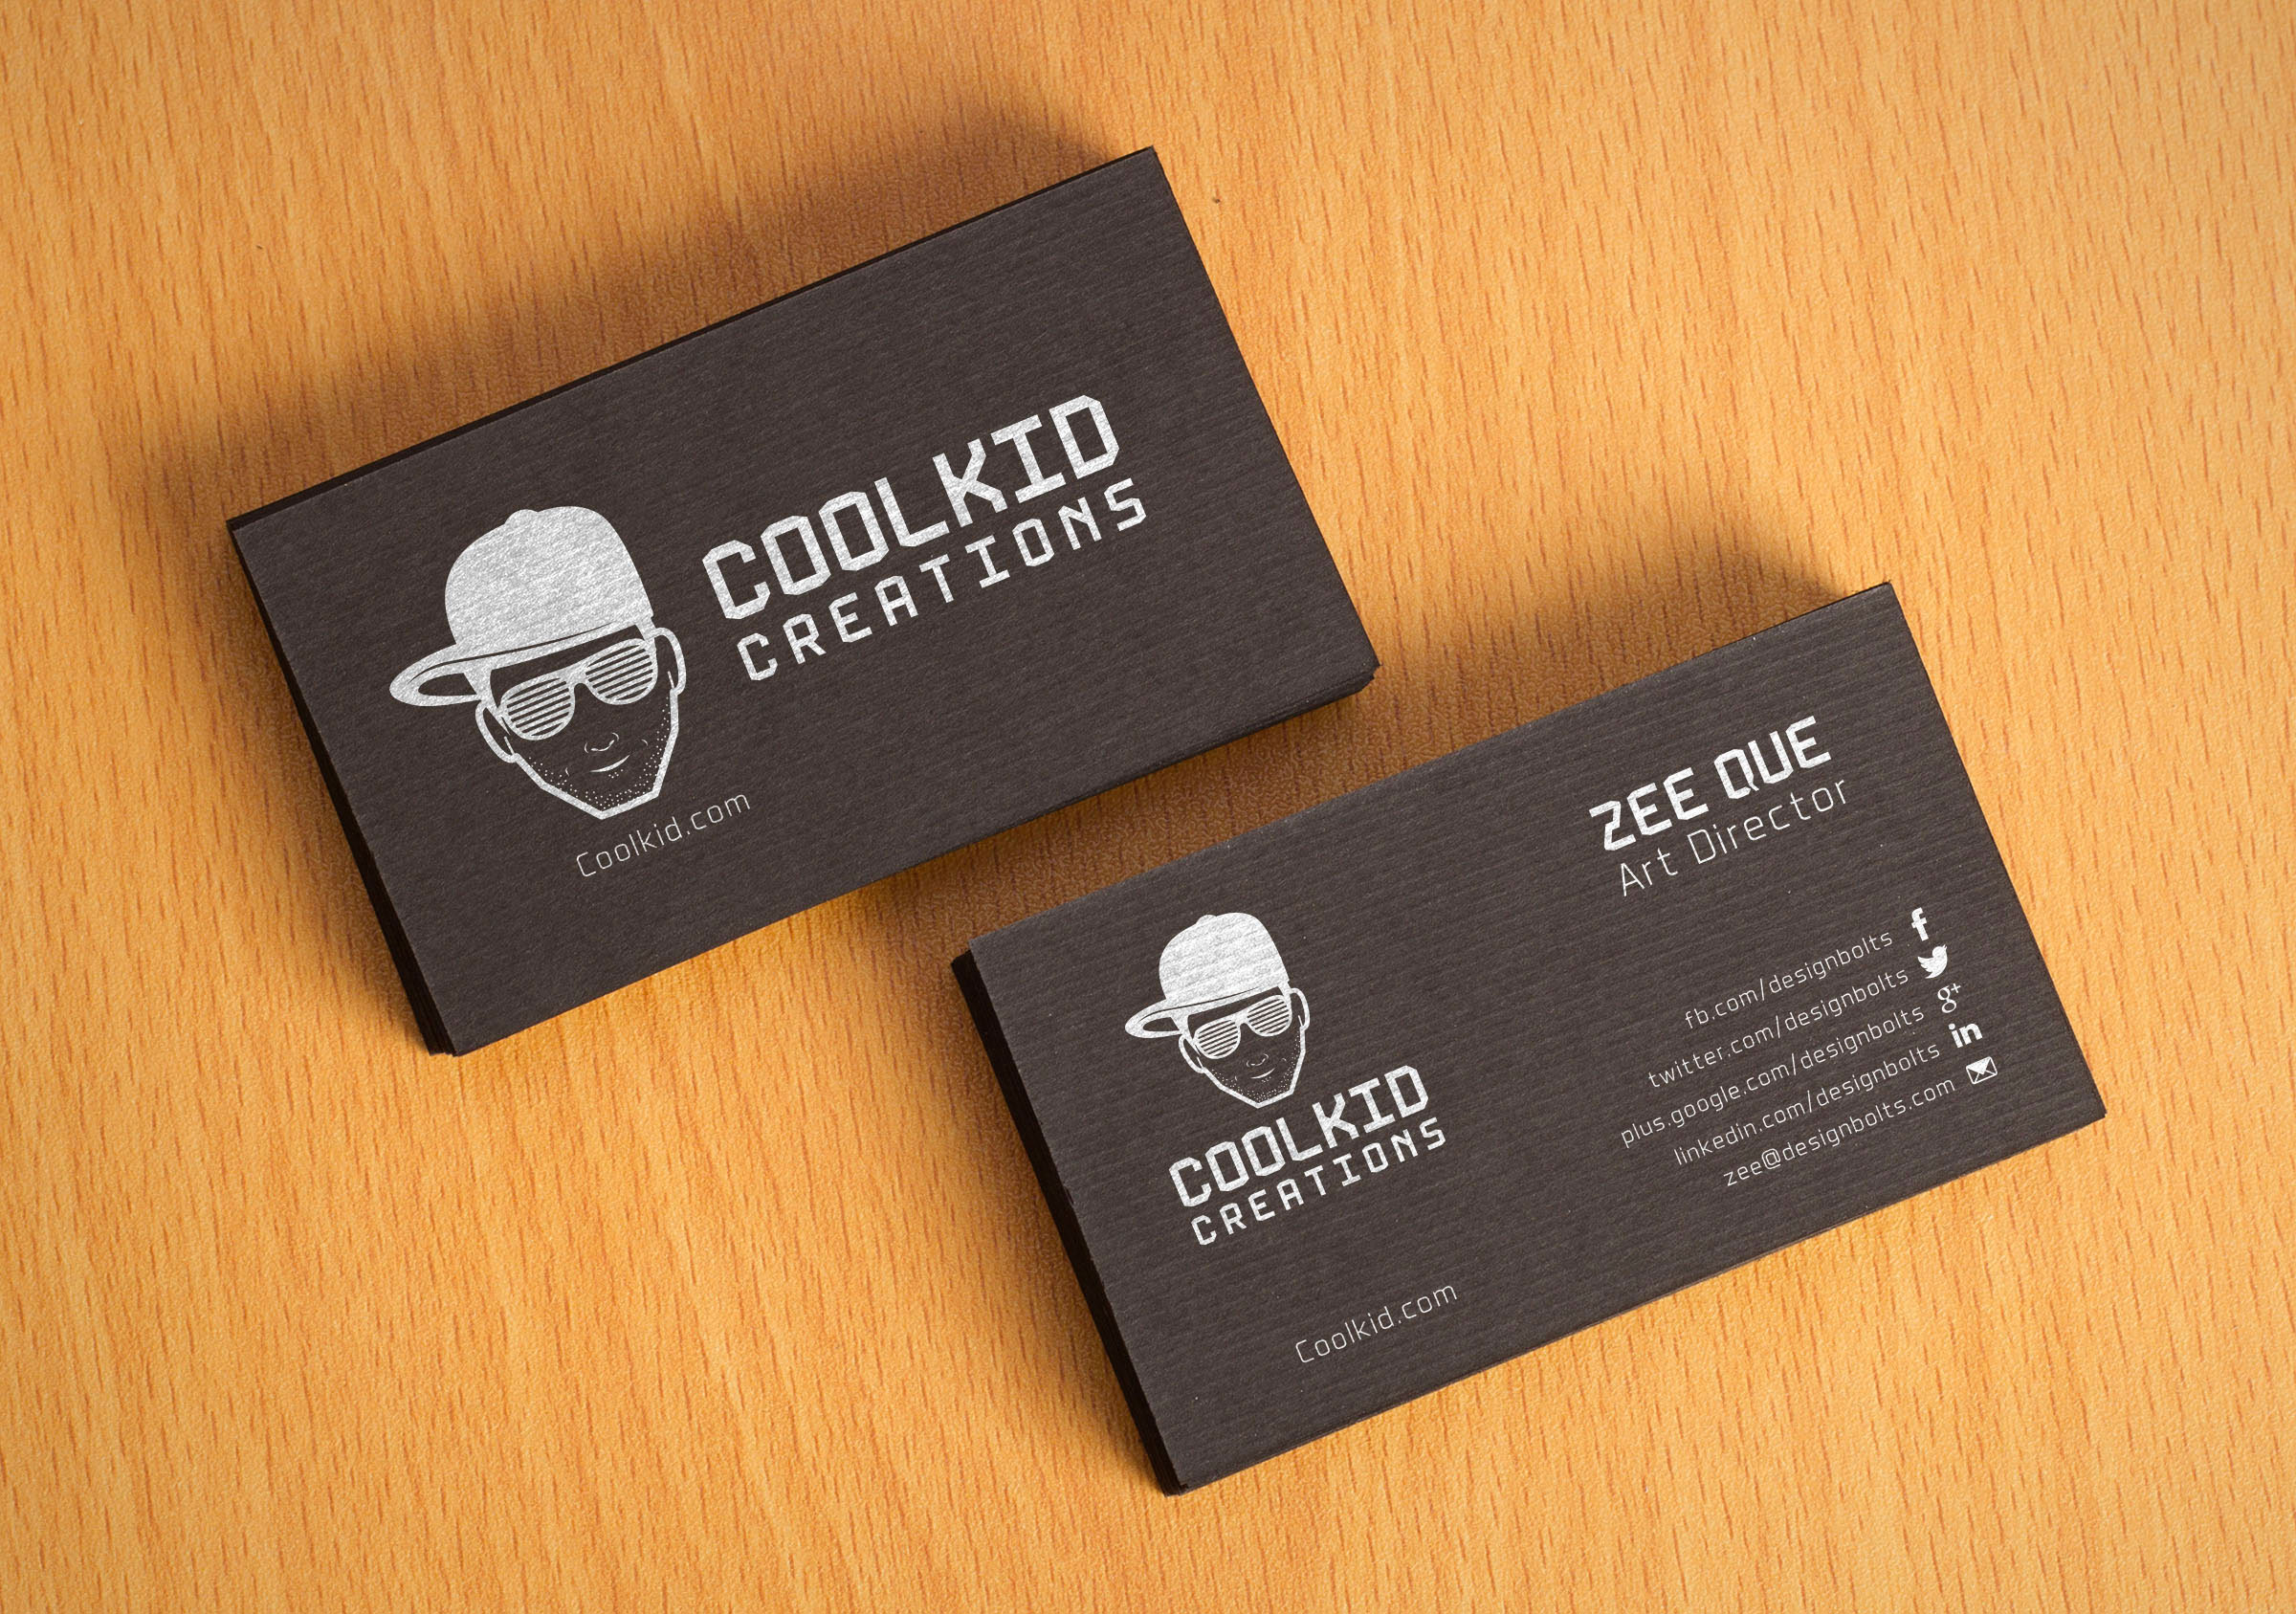 Free Black Textured Business Card Design Template Mockup PSD - Business cards online template